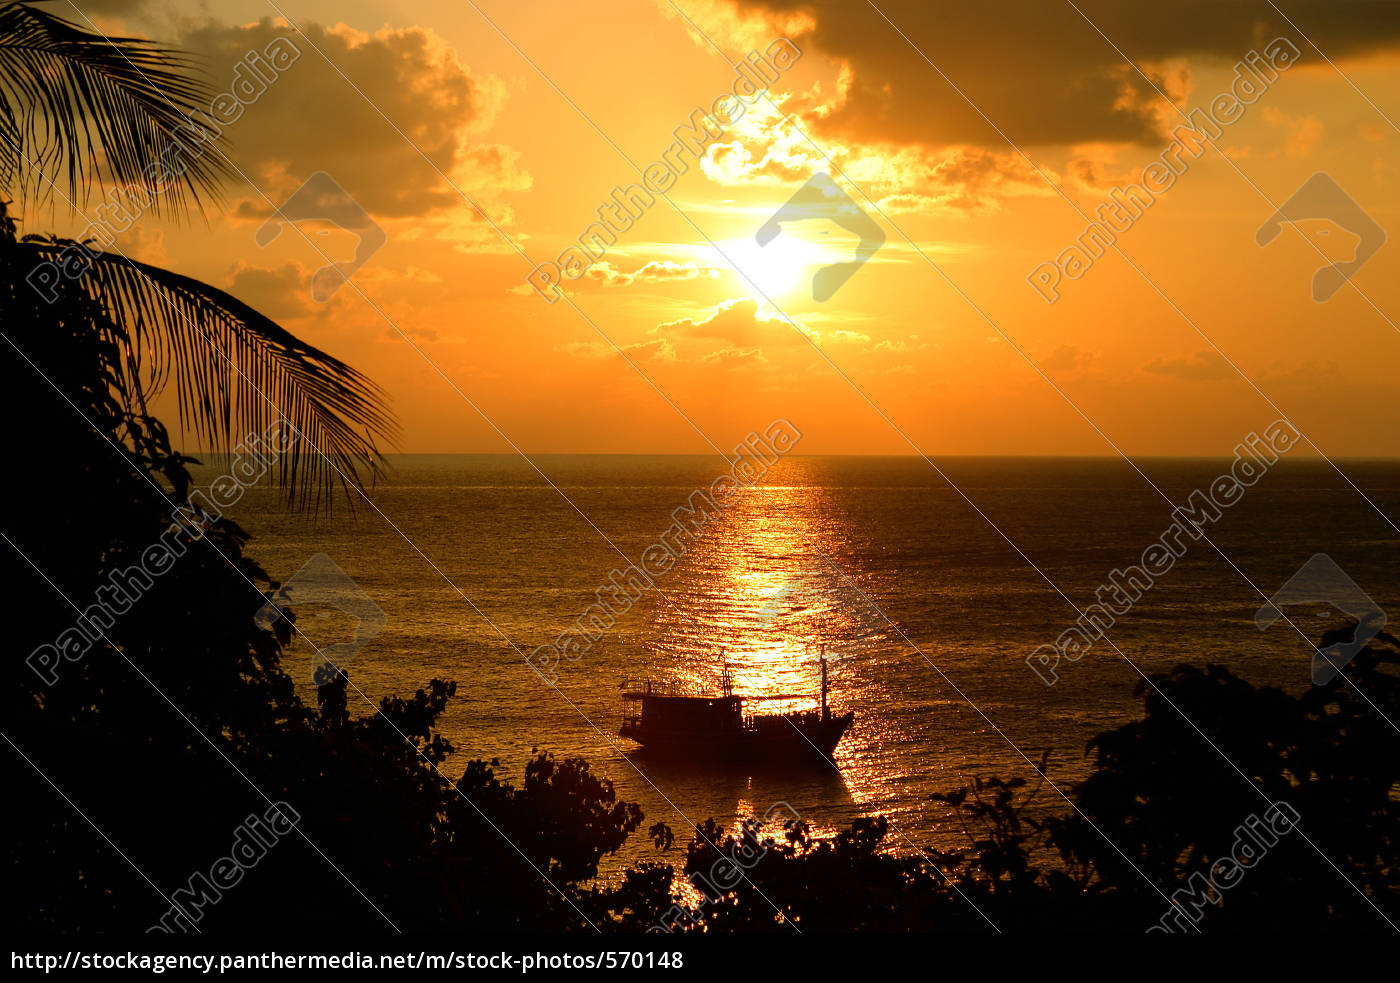 boat, moored, at, sunset - 570148